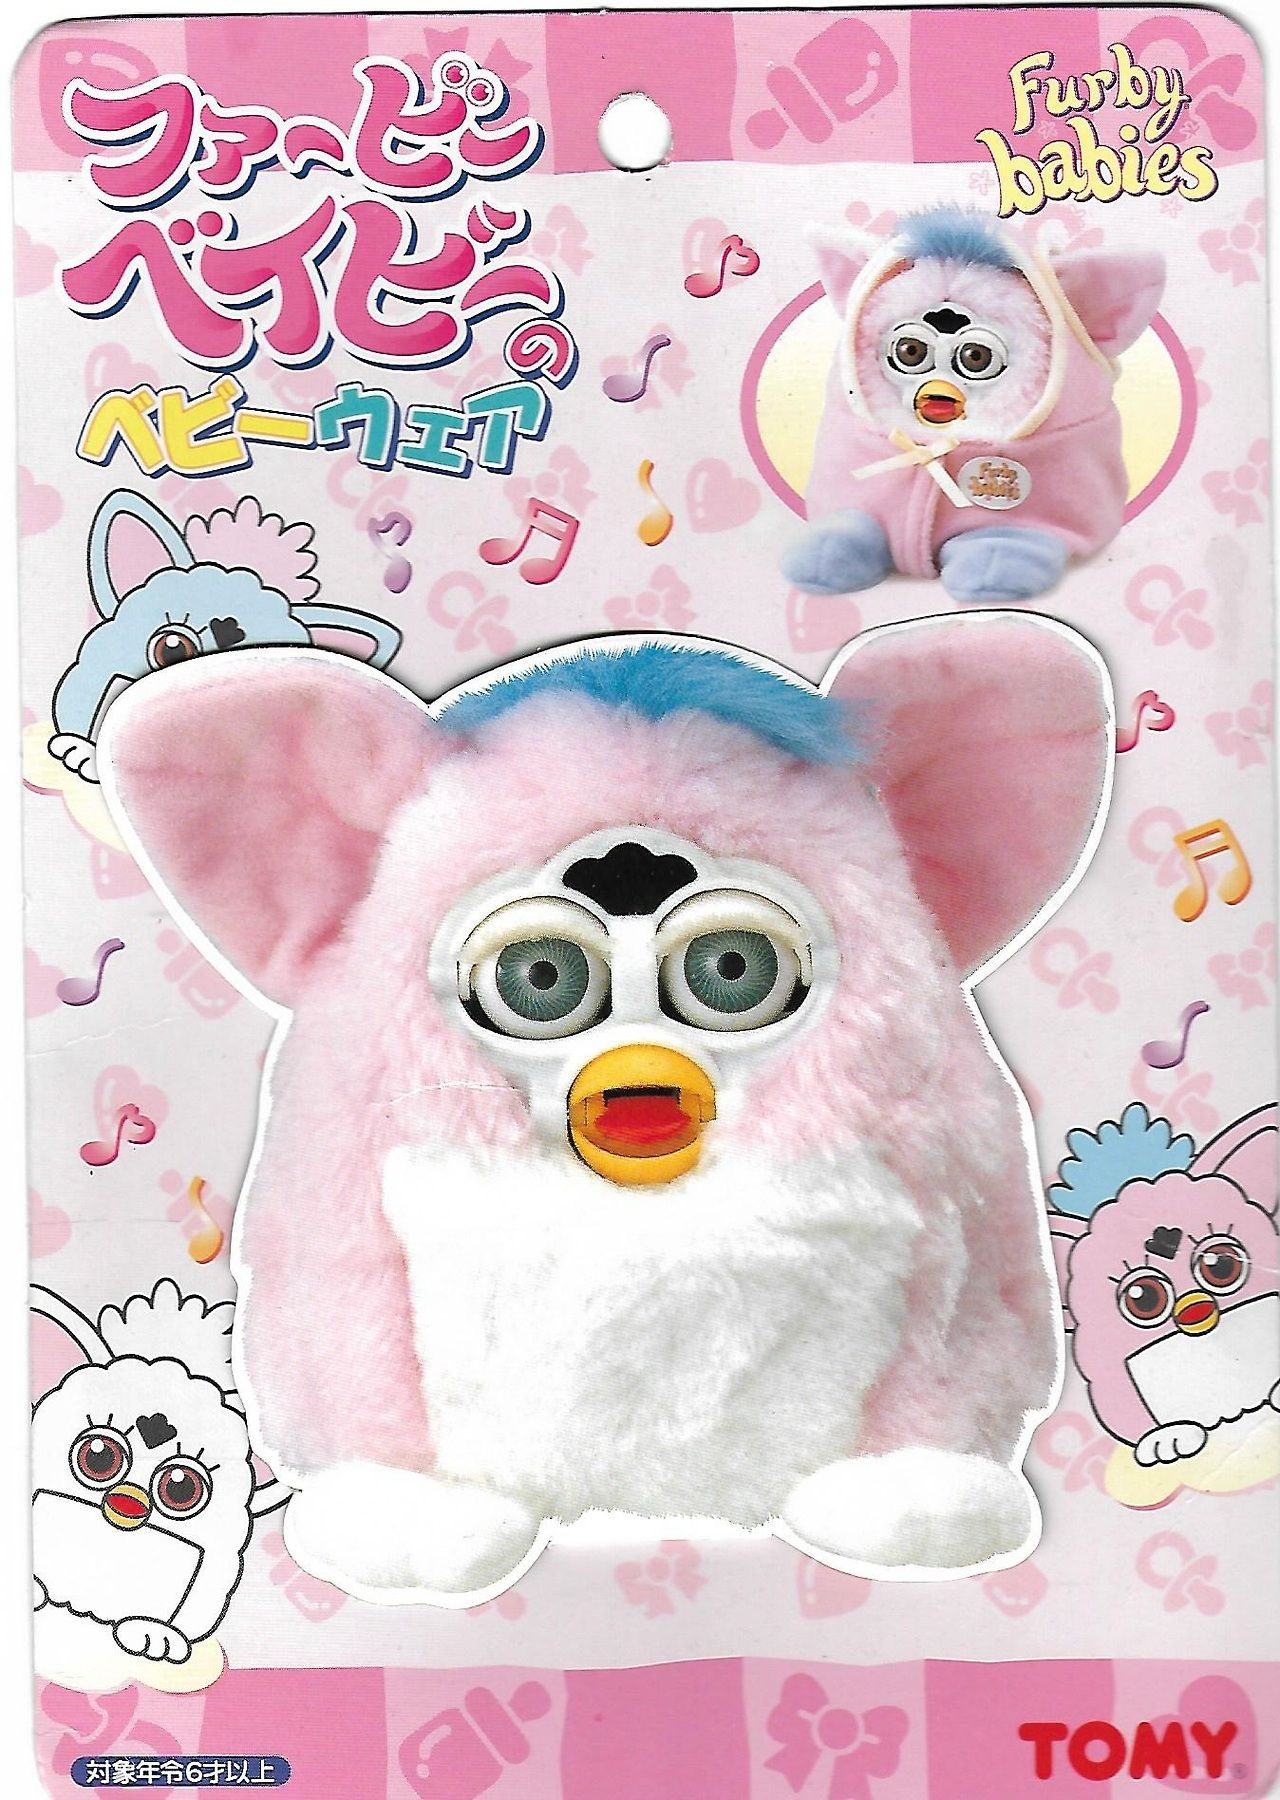 Pin By Julia On Innocent Babies Furby Real Wild Child Art Reference Photos